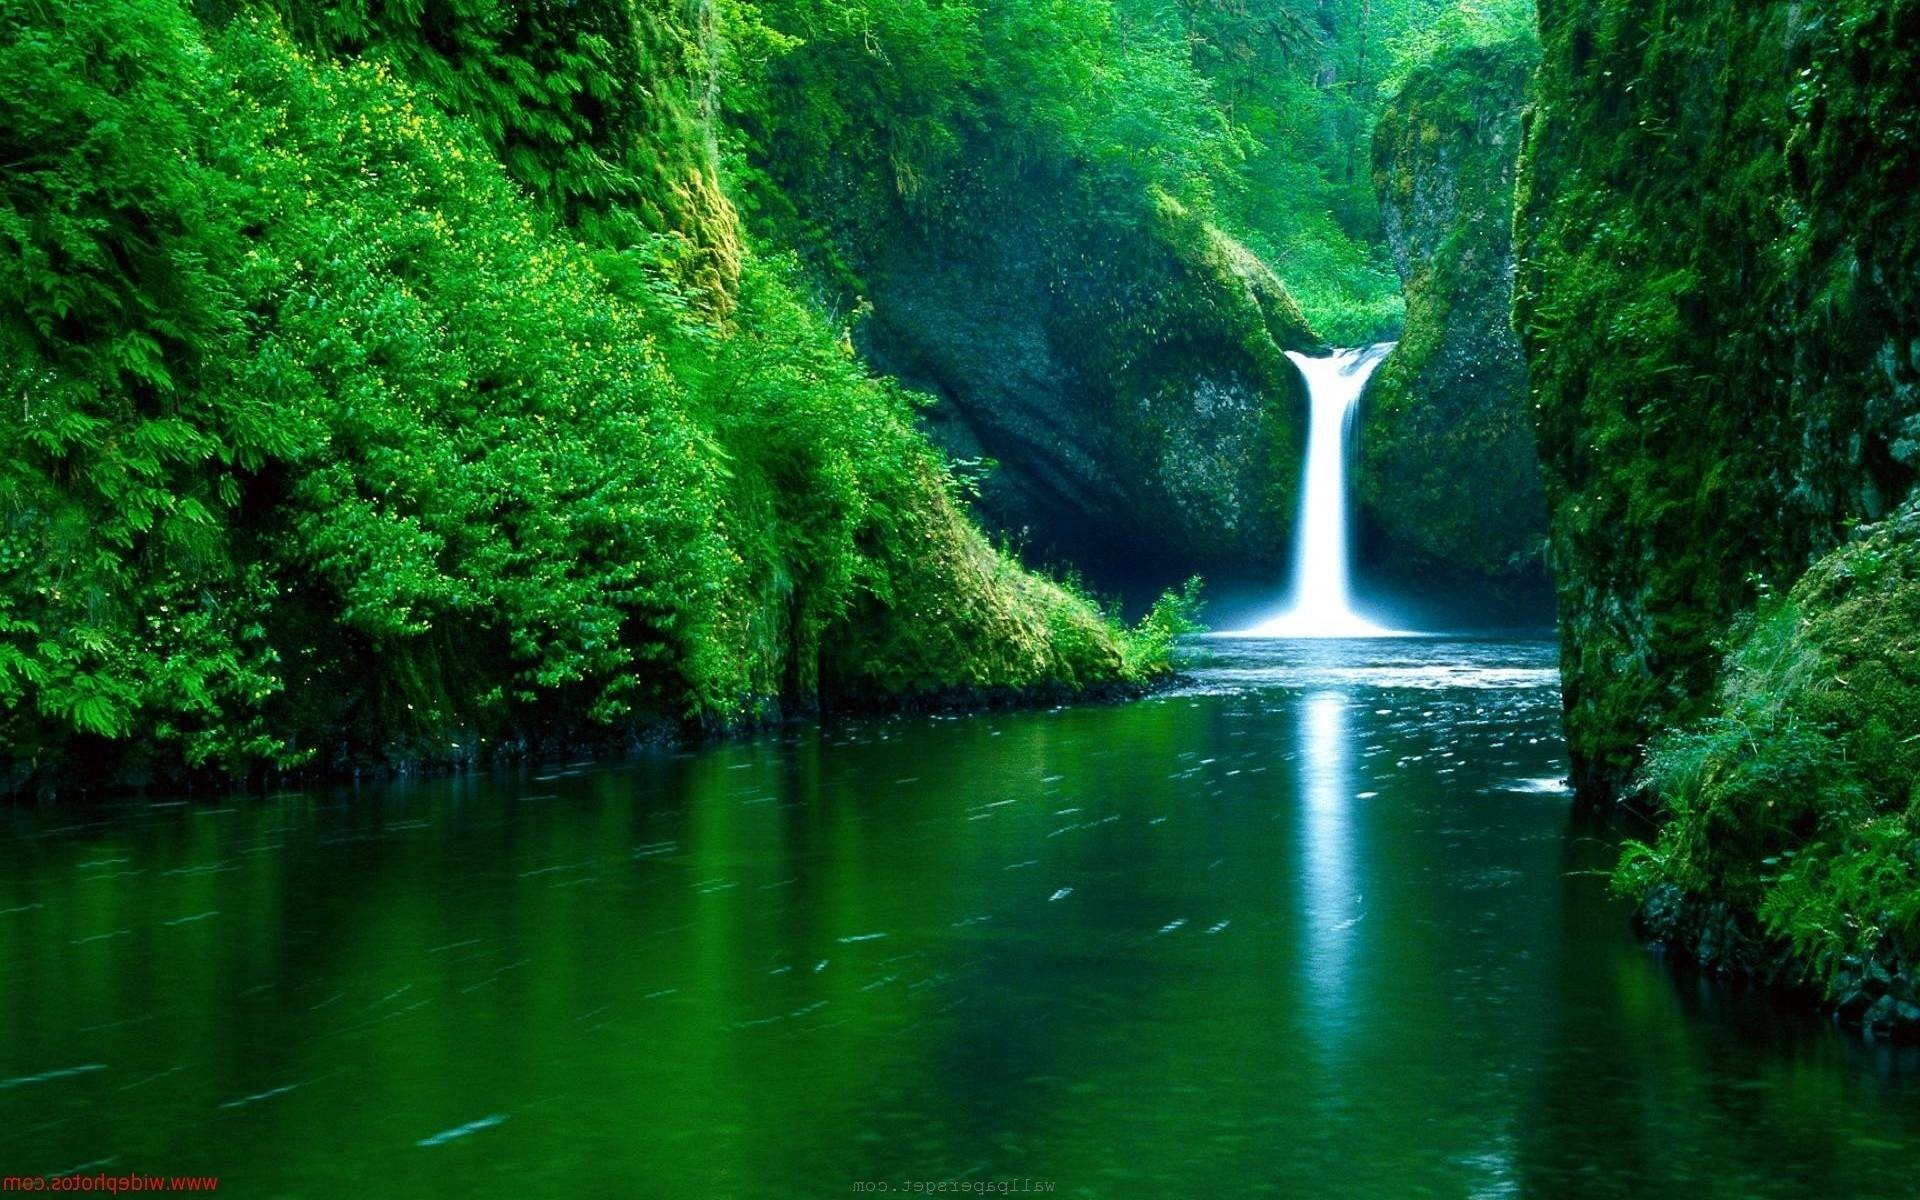 Nature Wallpaper 1600x900 72 Pictures